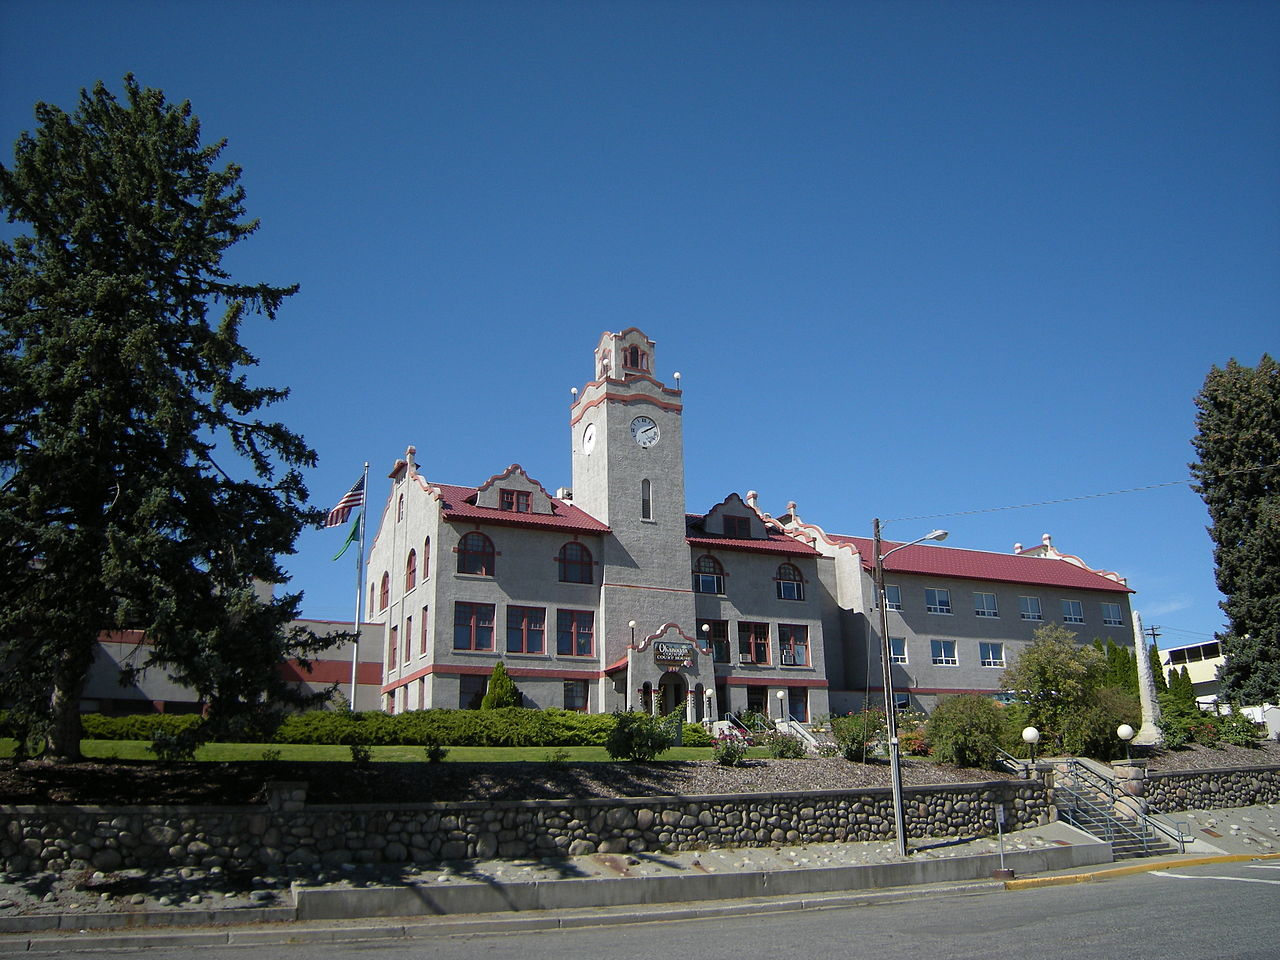 Okanogan County Courthouse was built in 1915 and is a fine example of Mission Revival architecture.